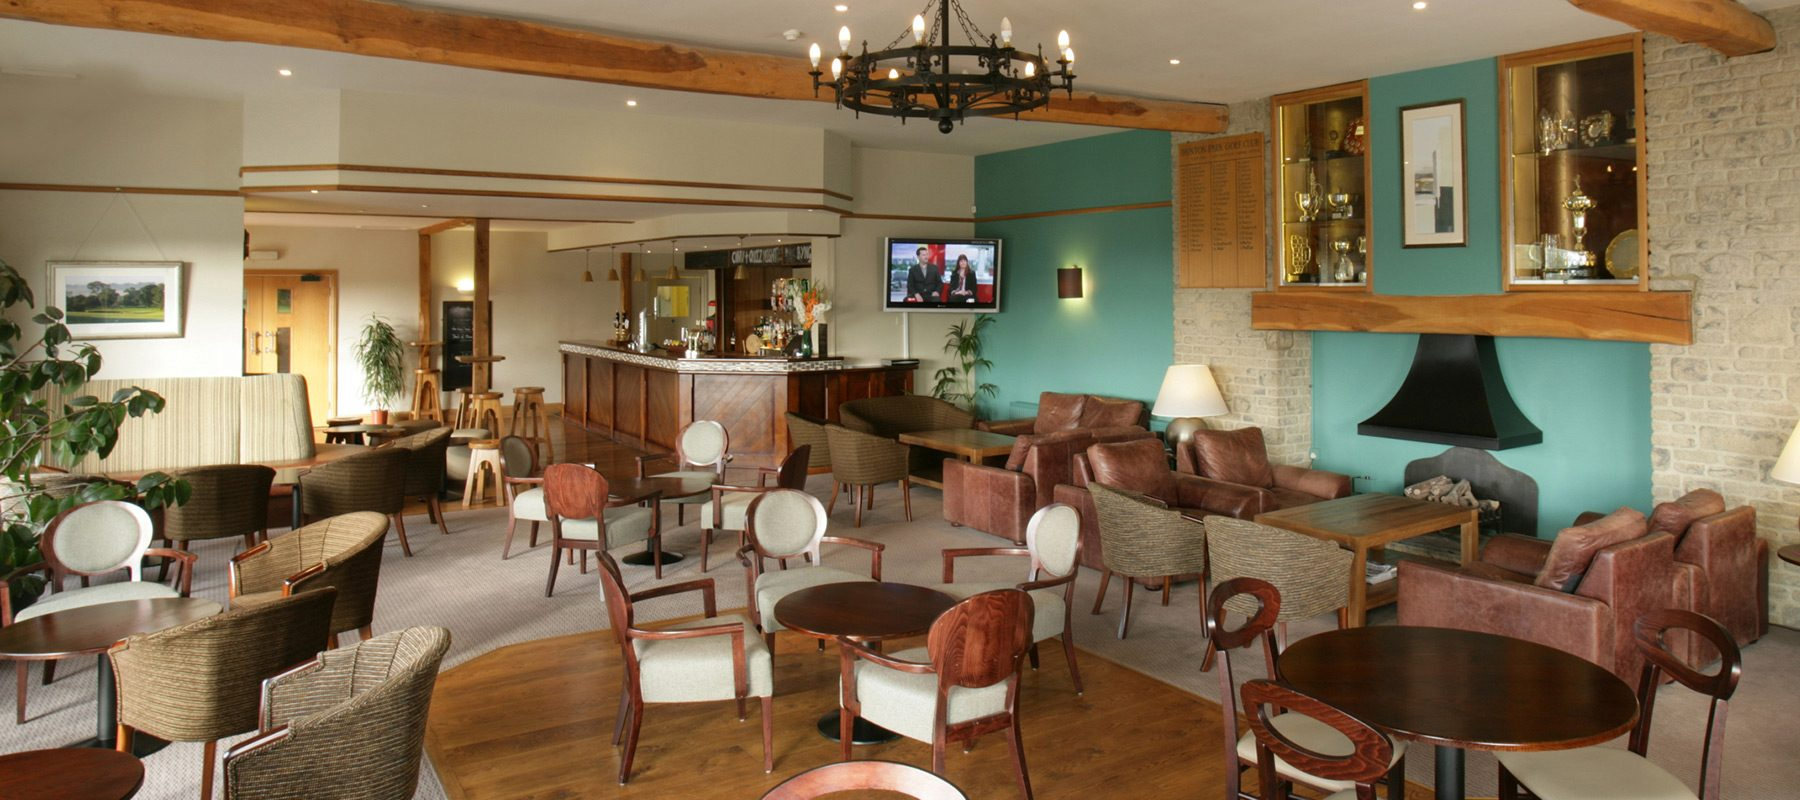 dainton park interior design lighting bar bespoke chair golf club